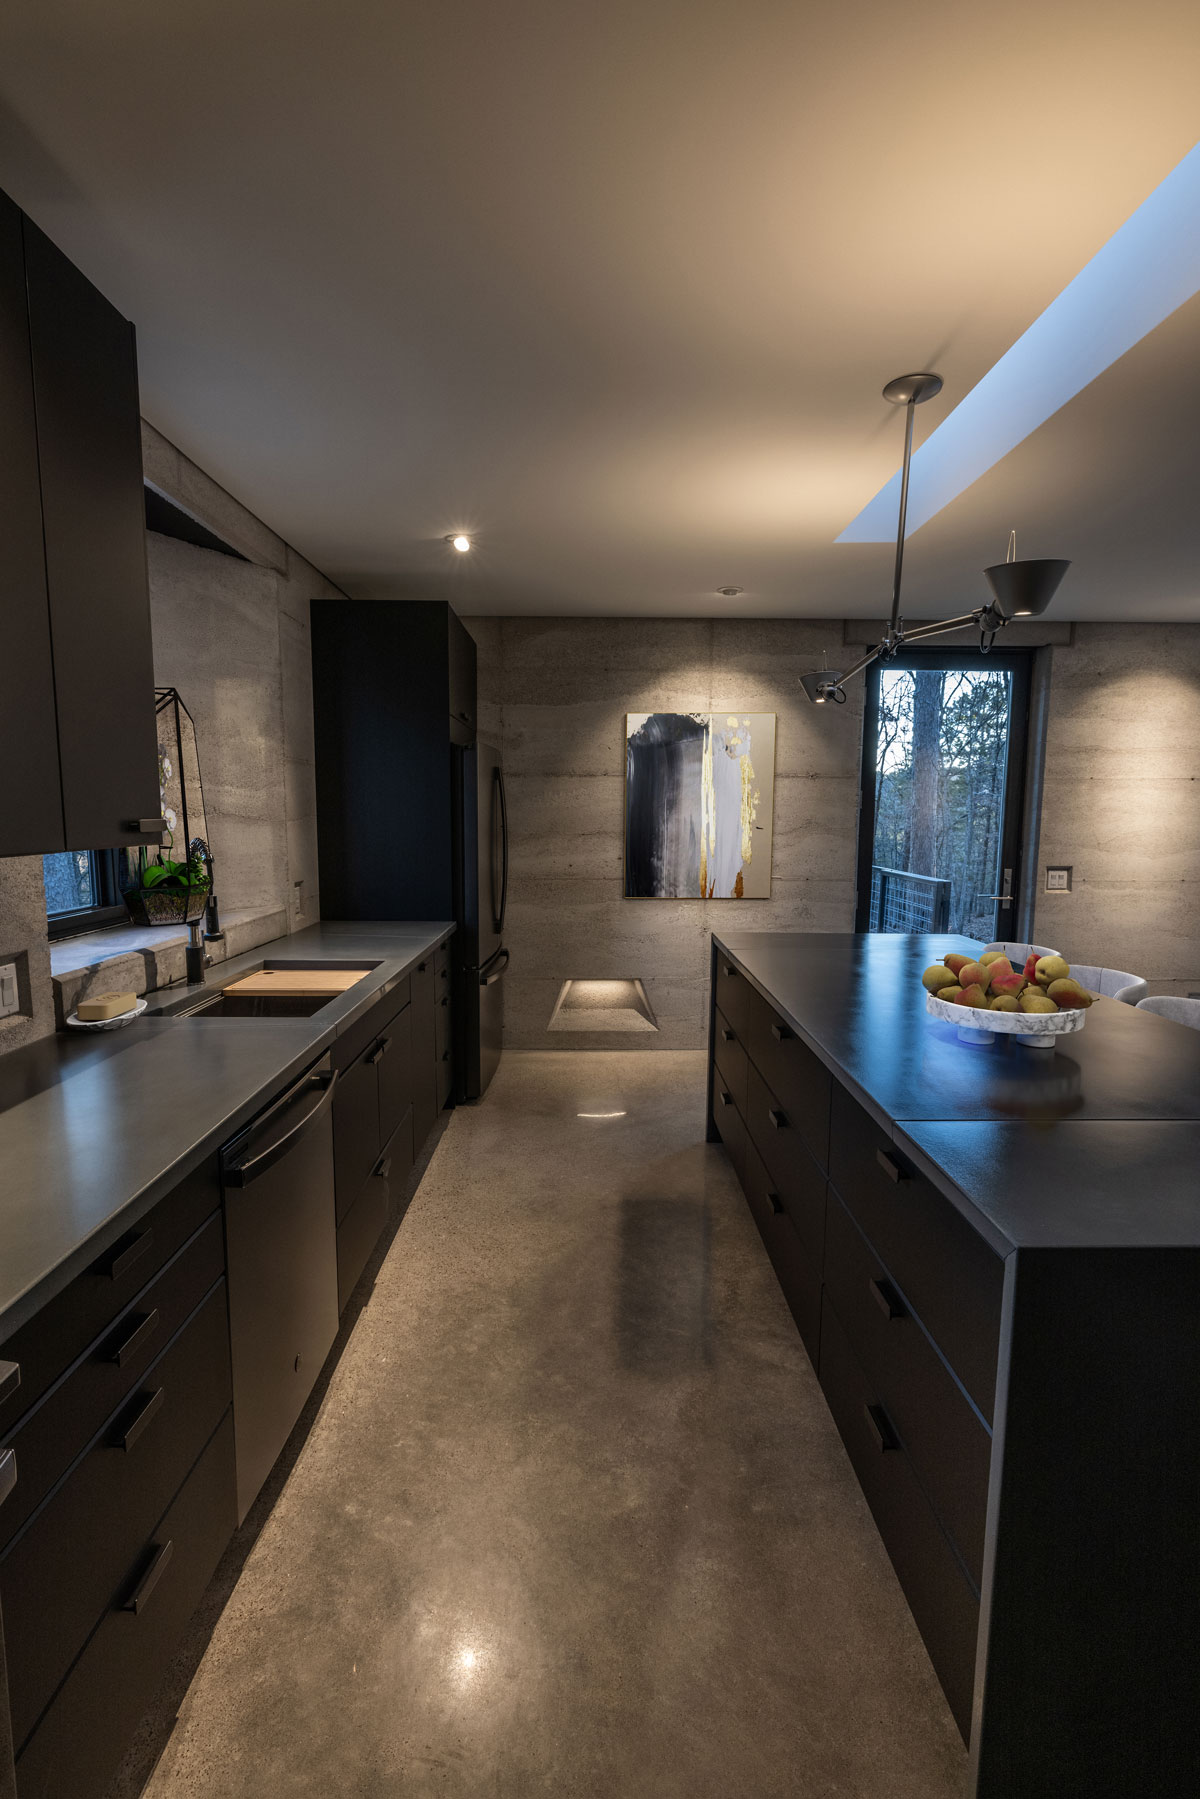 A modern kitchen in a rammed earth house featuring custom concrete countertops and matte black cabinets